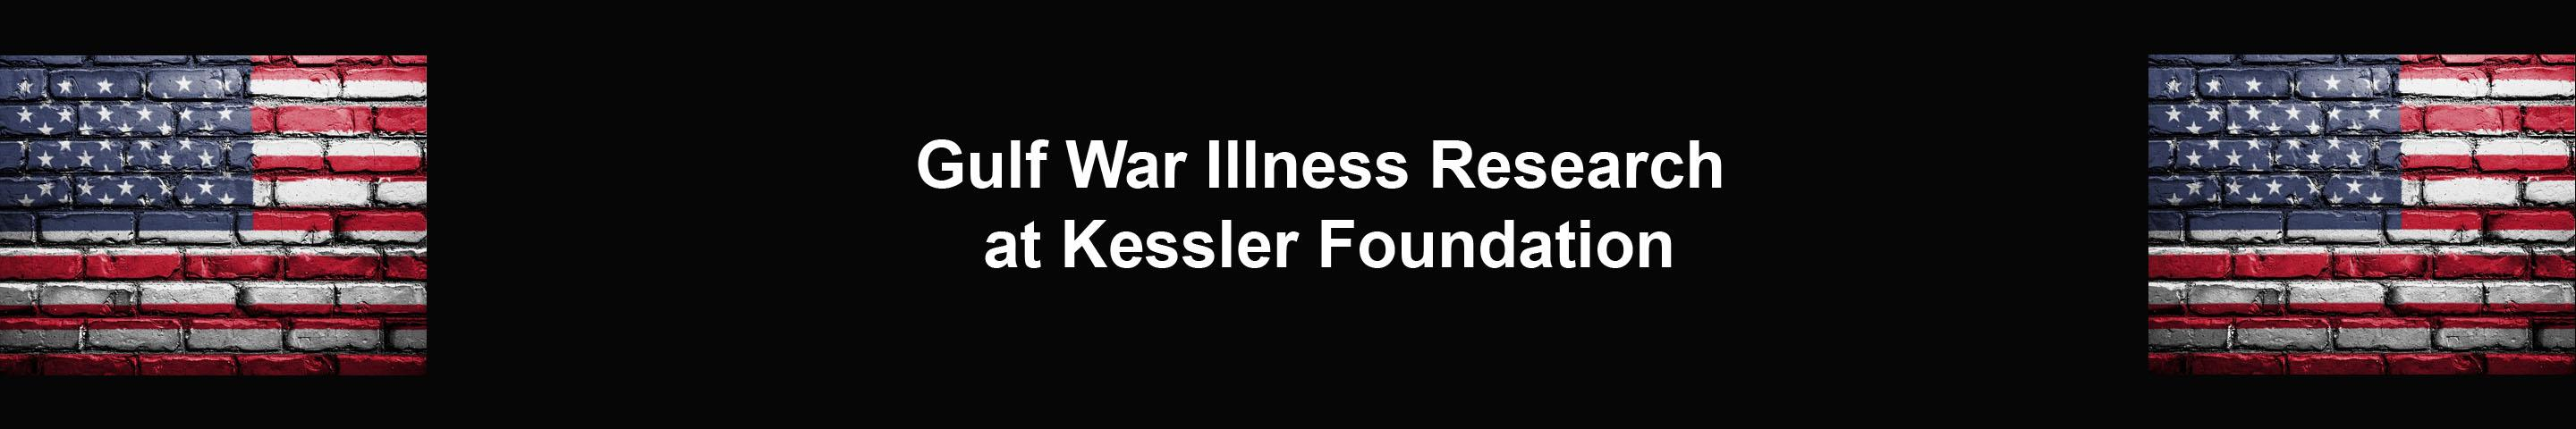 Gulf War Illness Research banner